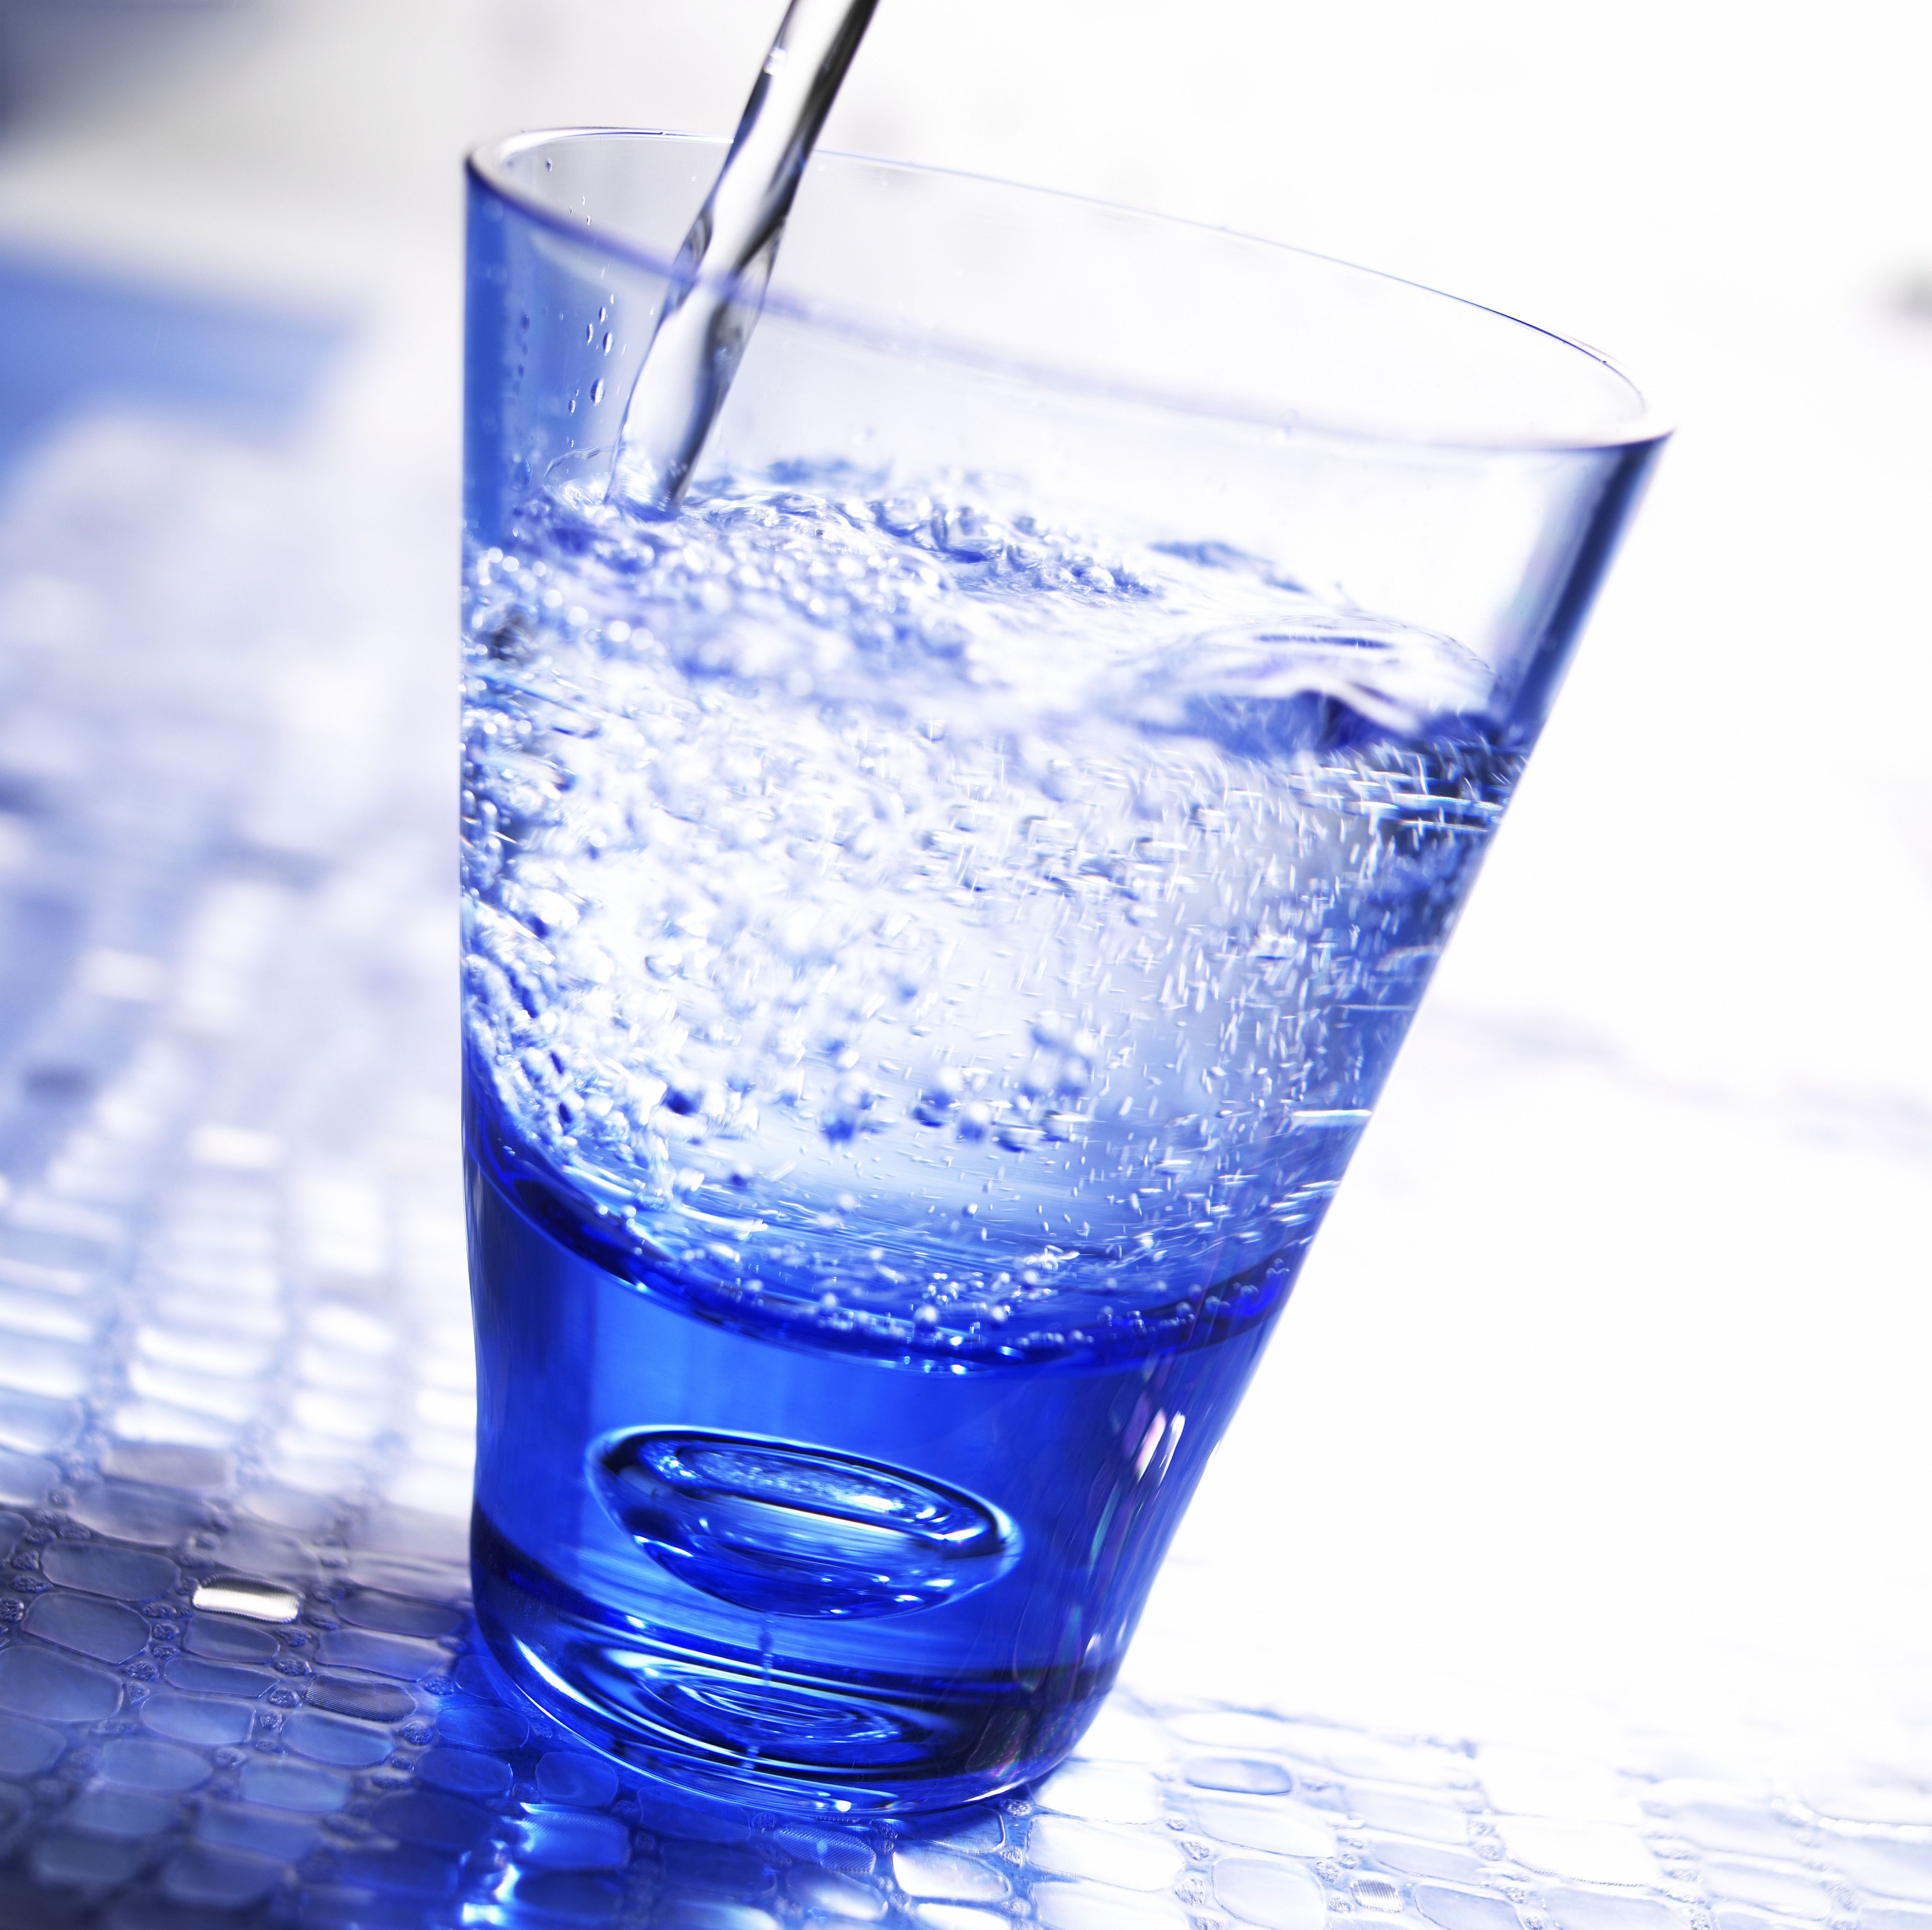 Lose 7 pounds of water weight in 1 day